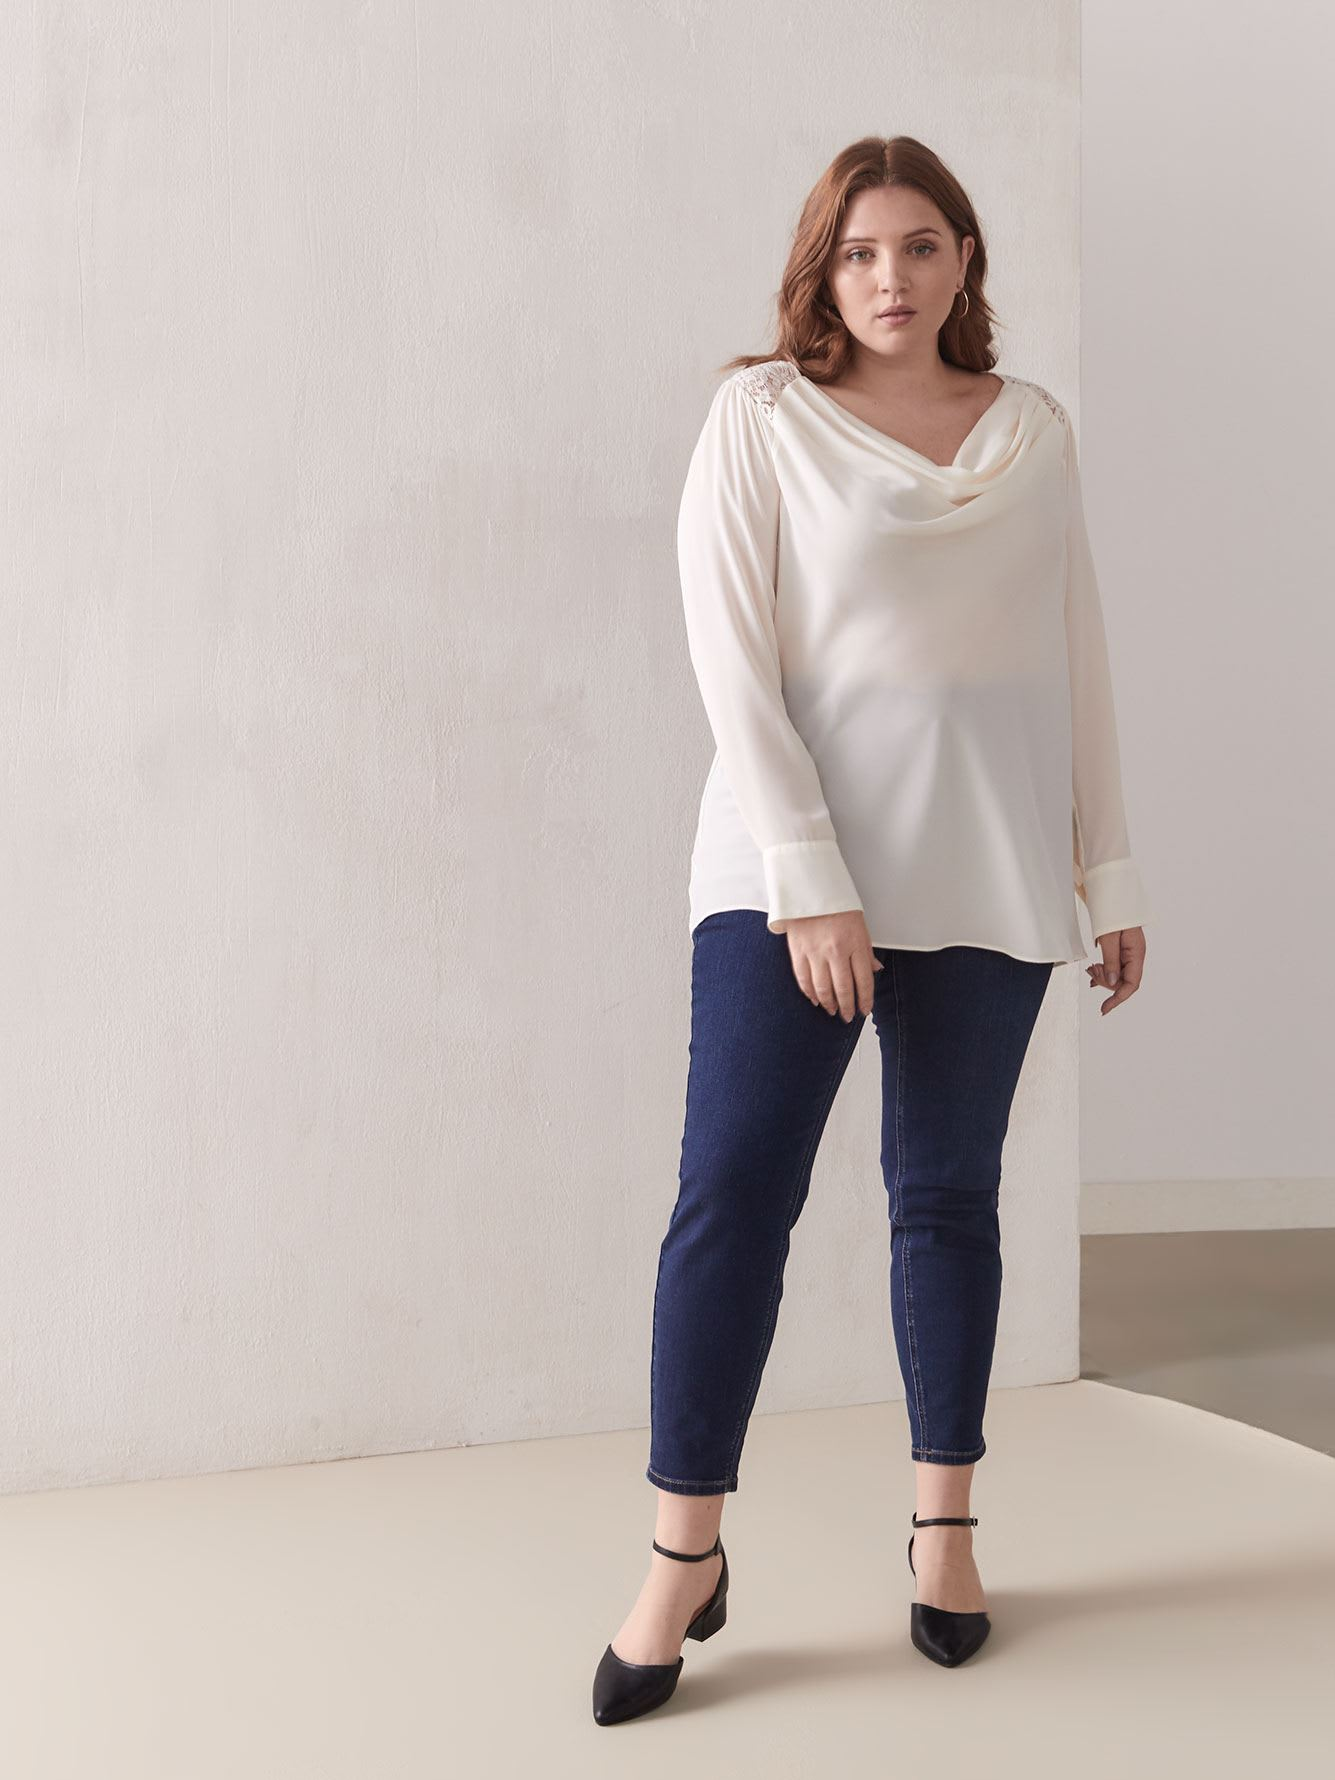 Draped Blouse With Lace Yoke - Addition Elle